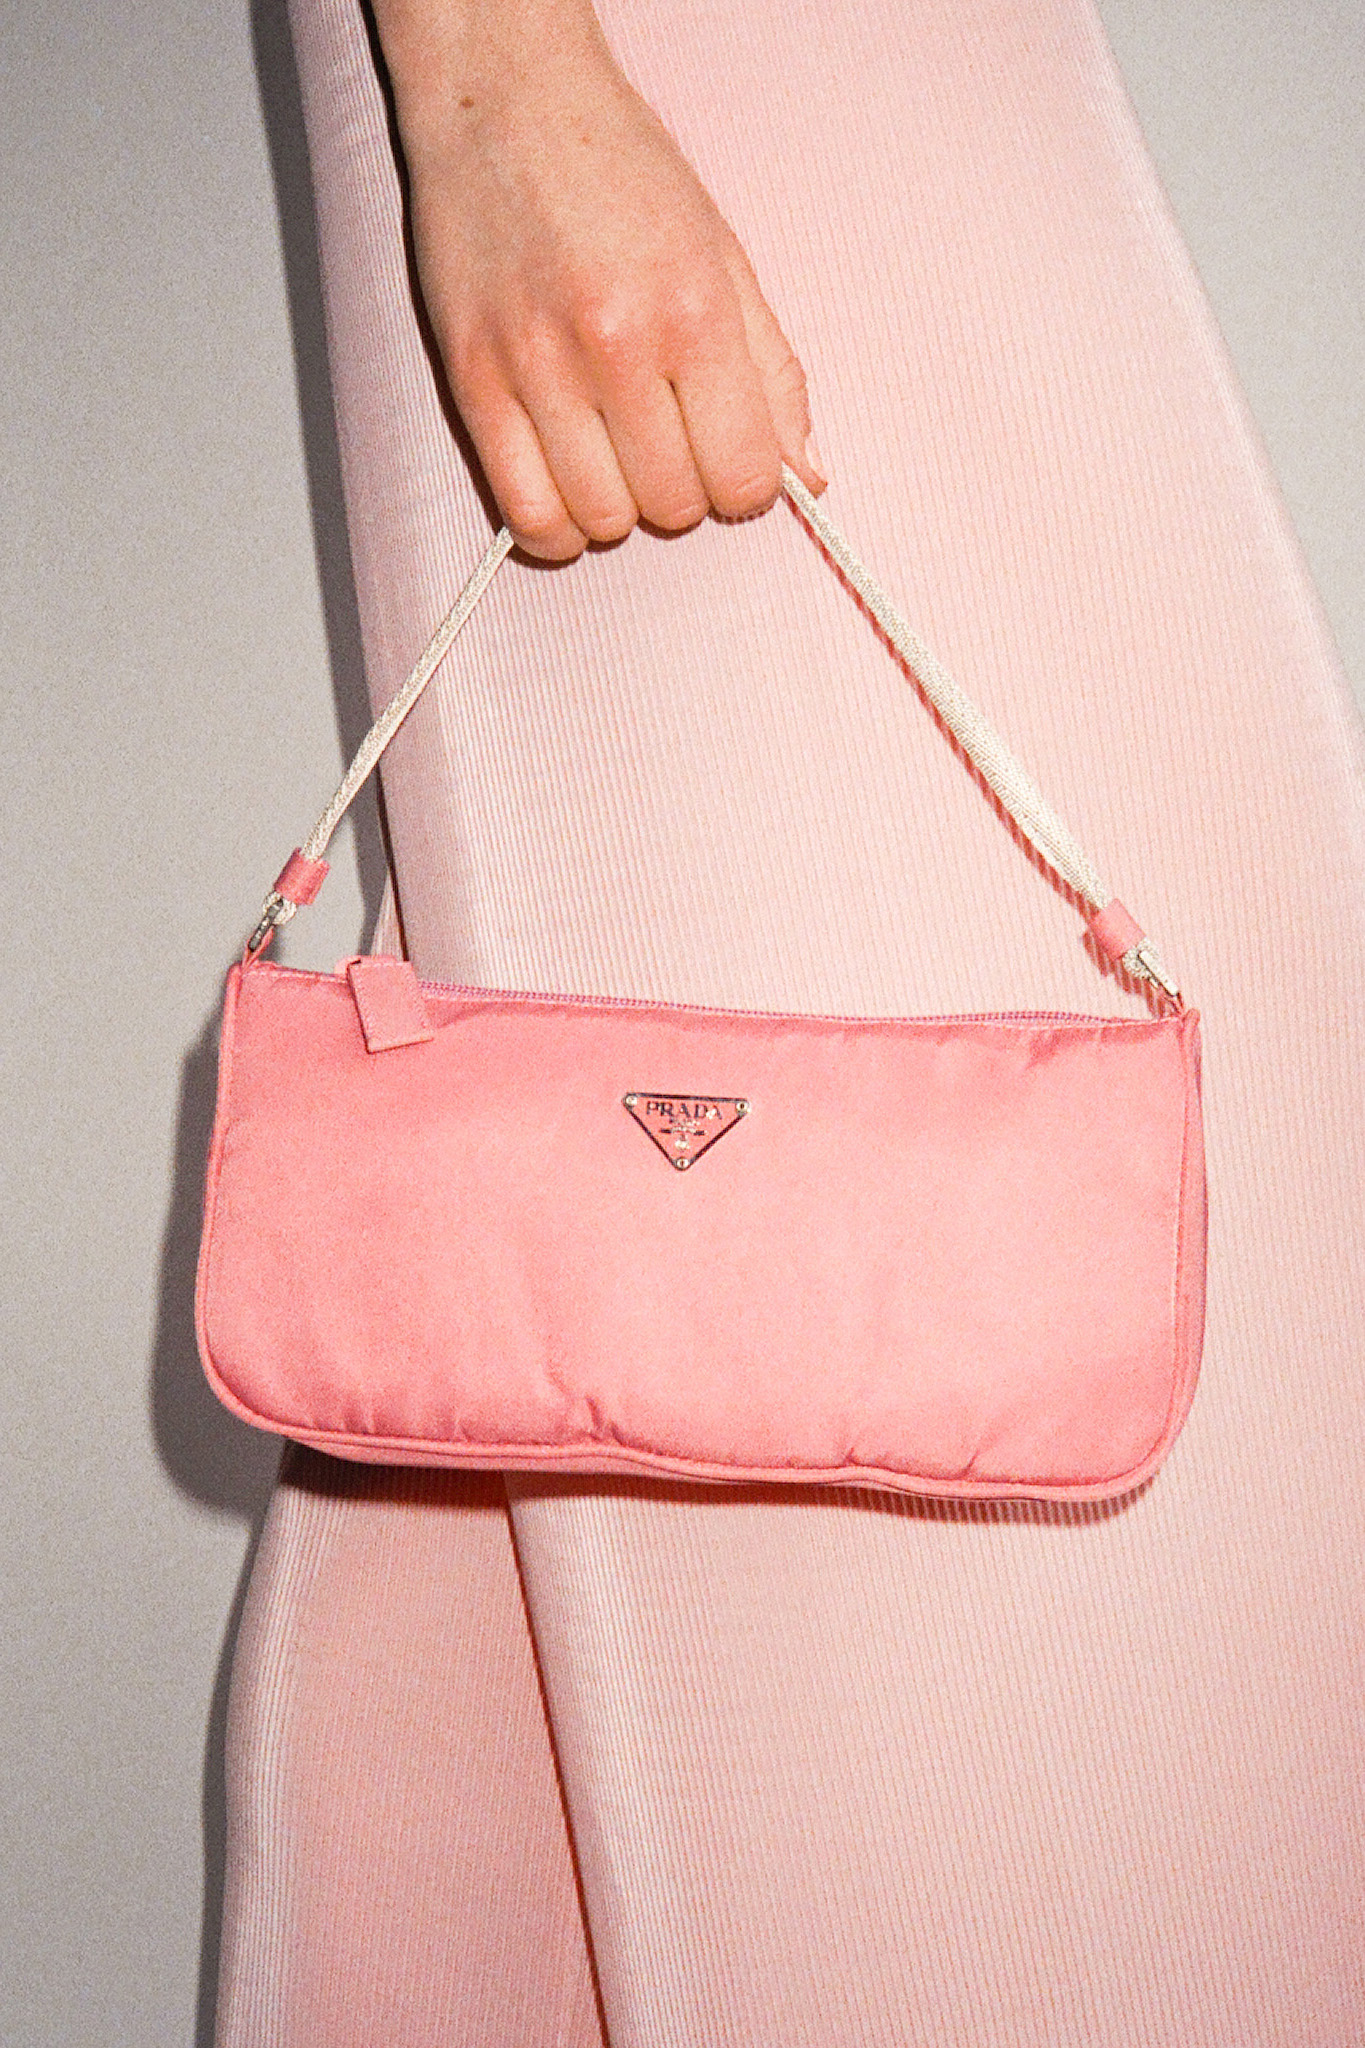 b25c0109d3b5 Vintage Prada Rose Tessuto Sport Baguette Bag — I Am That